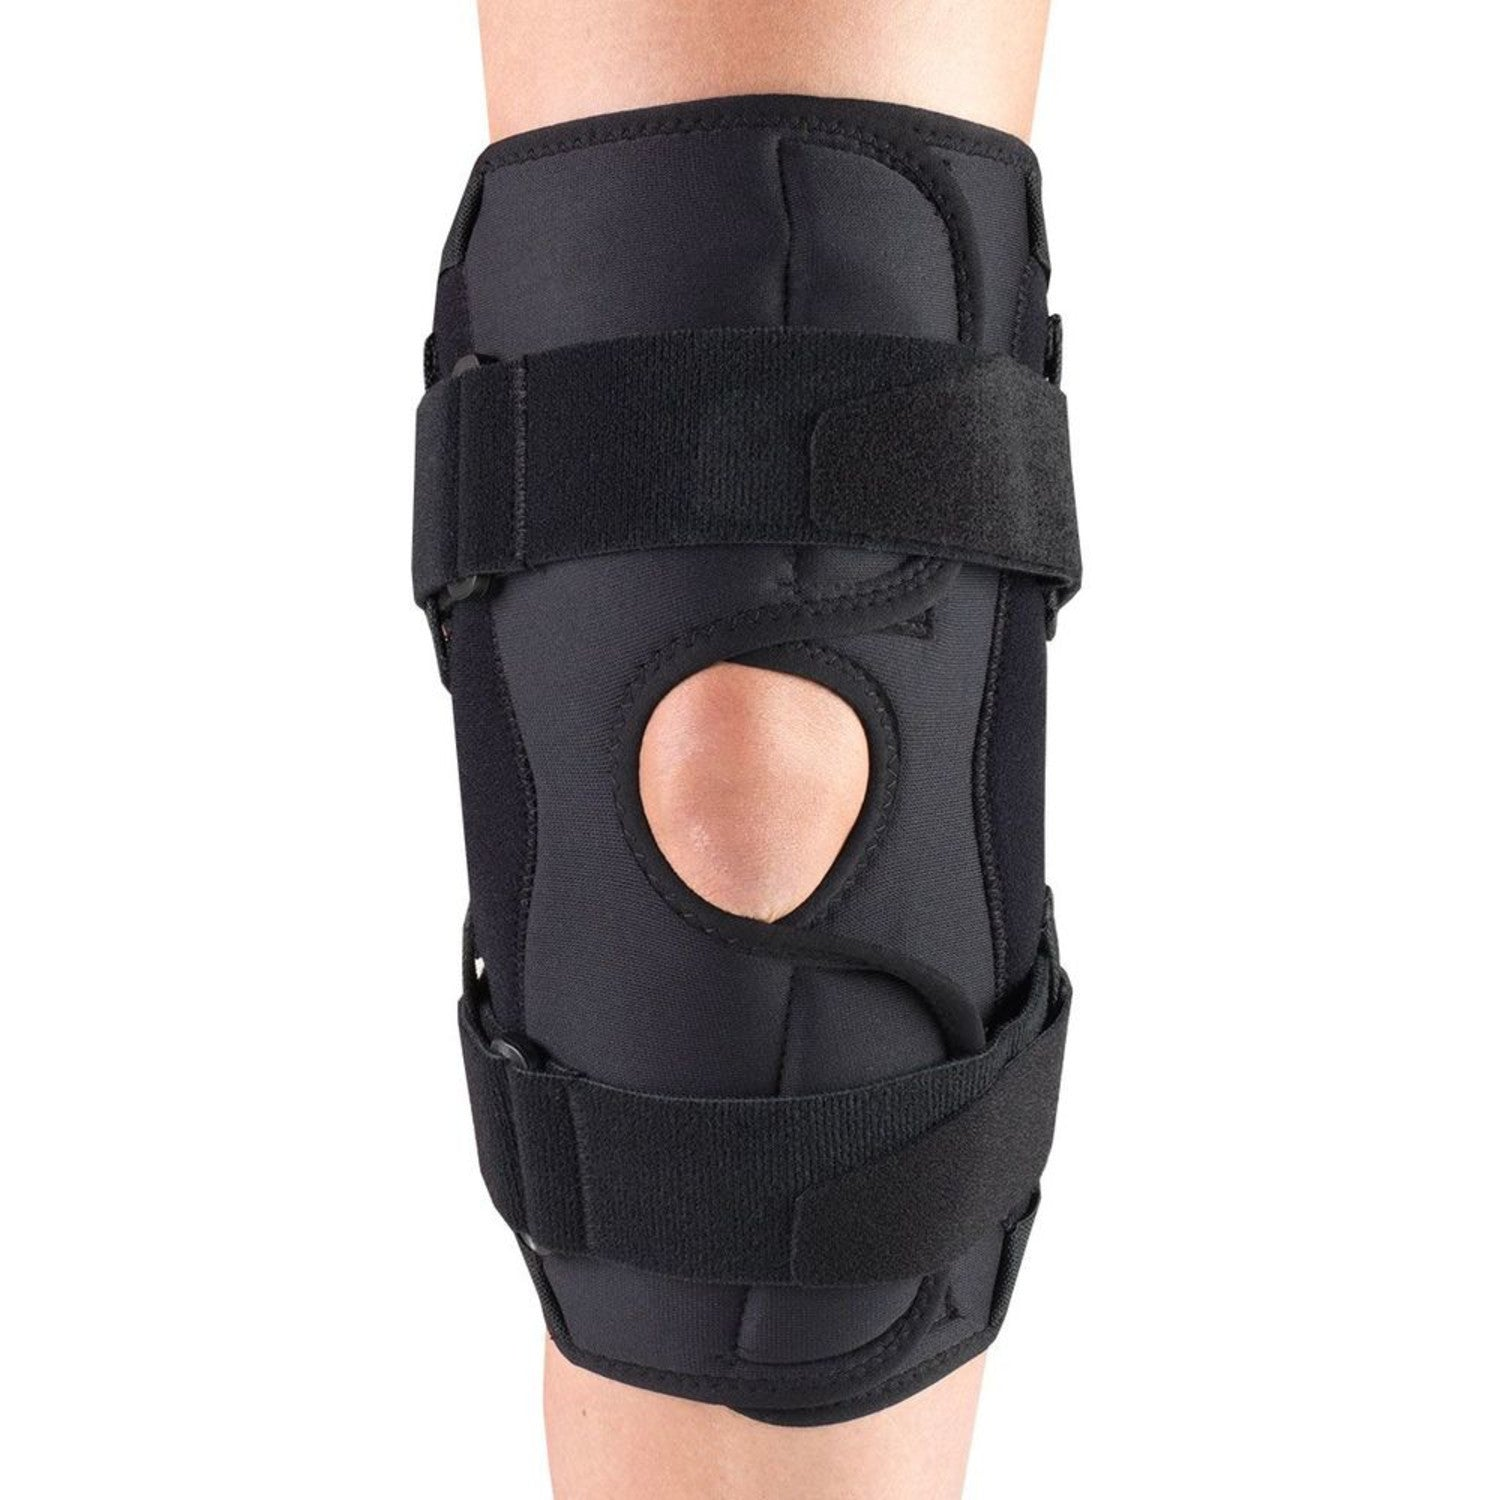 --Front of ORTHOTEX KNEE STABILIZER WRAP - HINGED BARS--